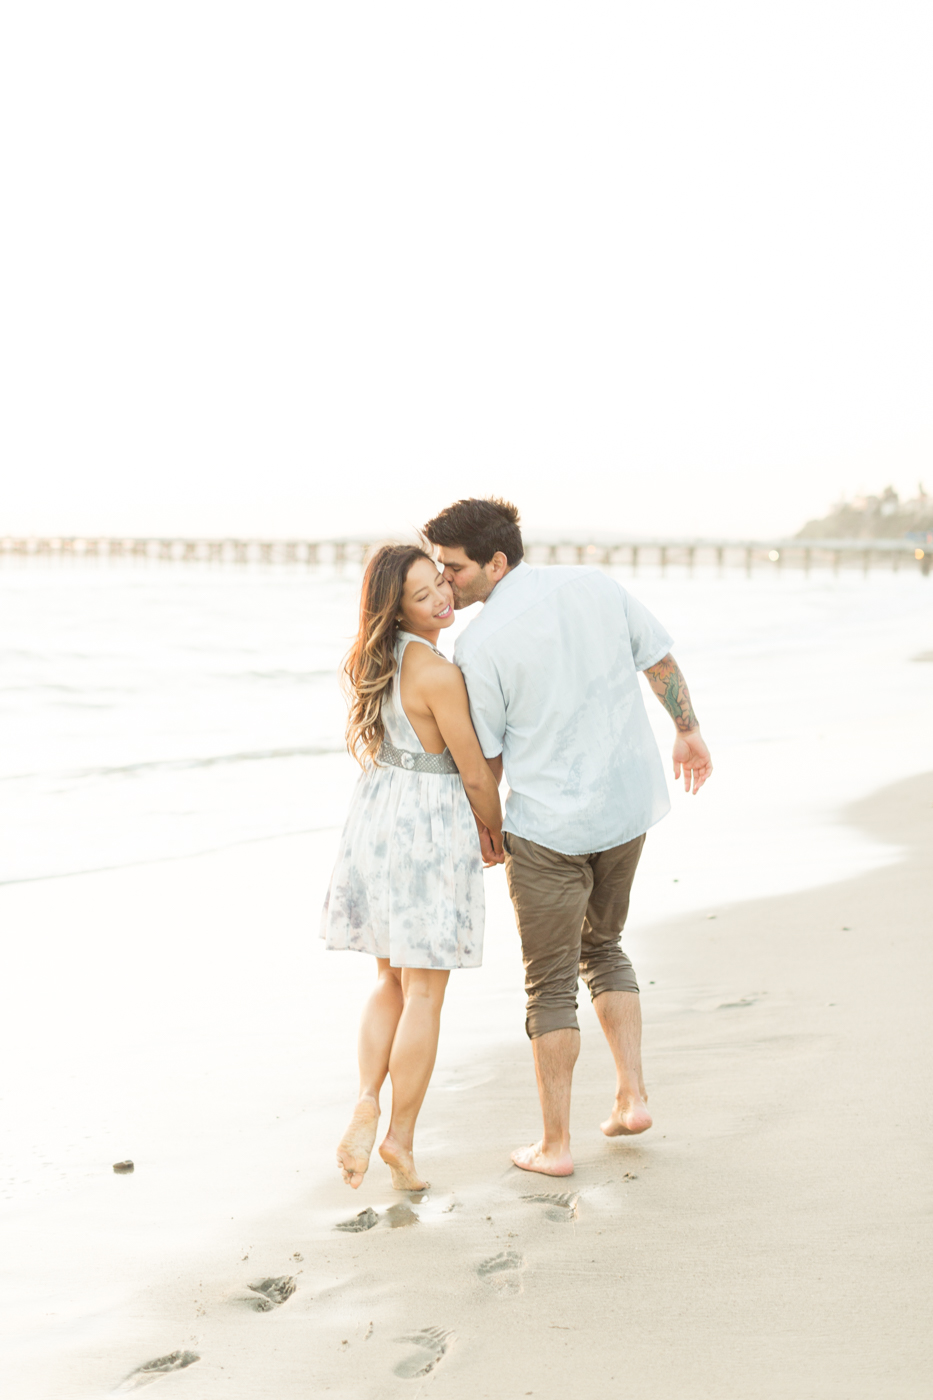 Love must be tended in order to thrive. This helpful post gives you five fun ideas so you can connect with the person you love most. Created by Christa Norman Photography.